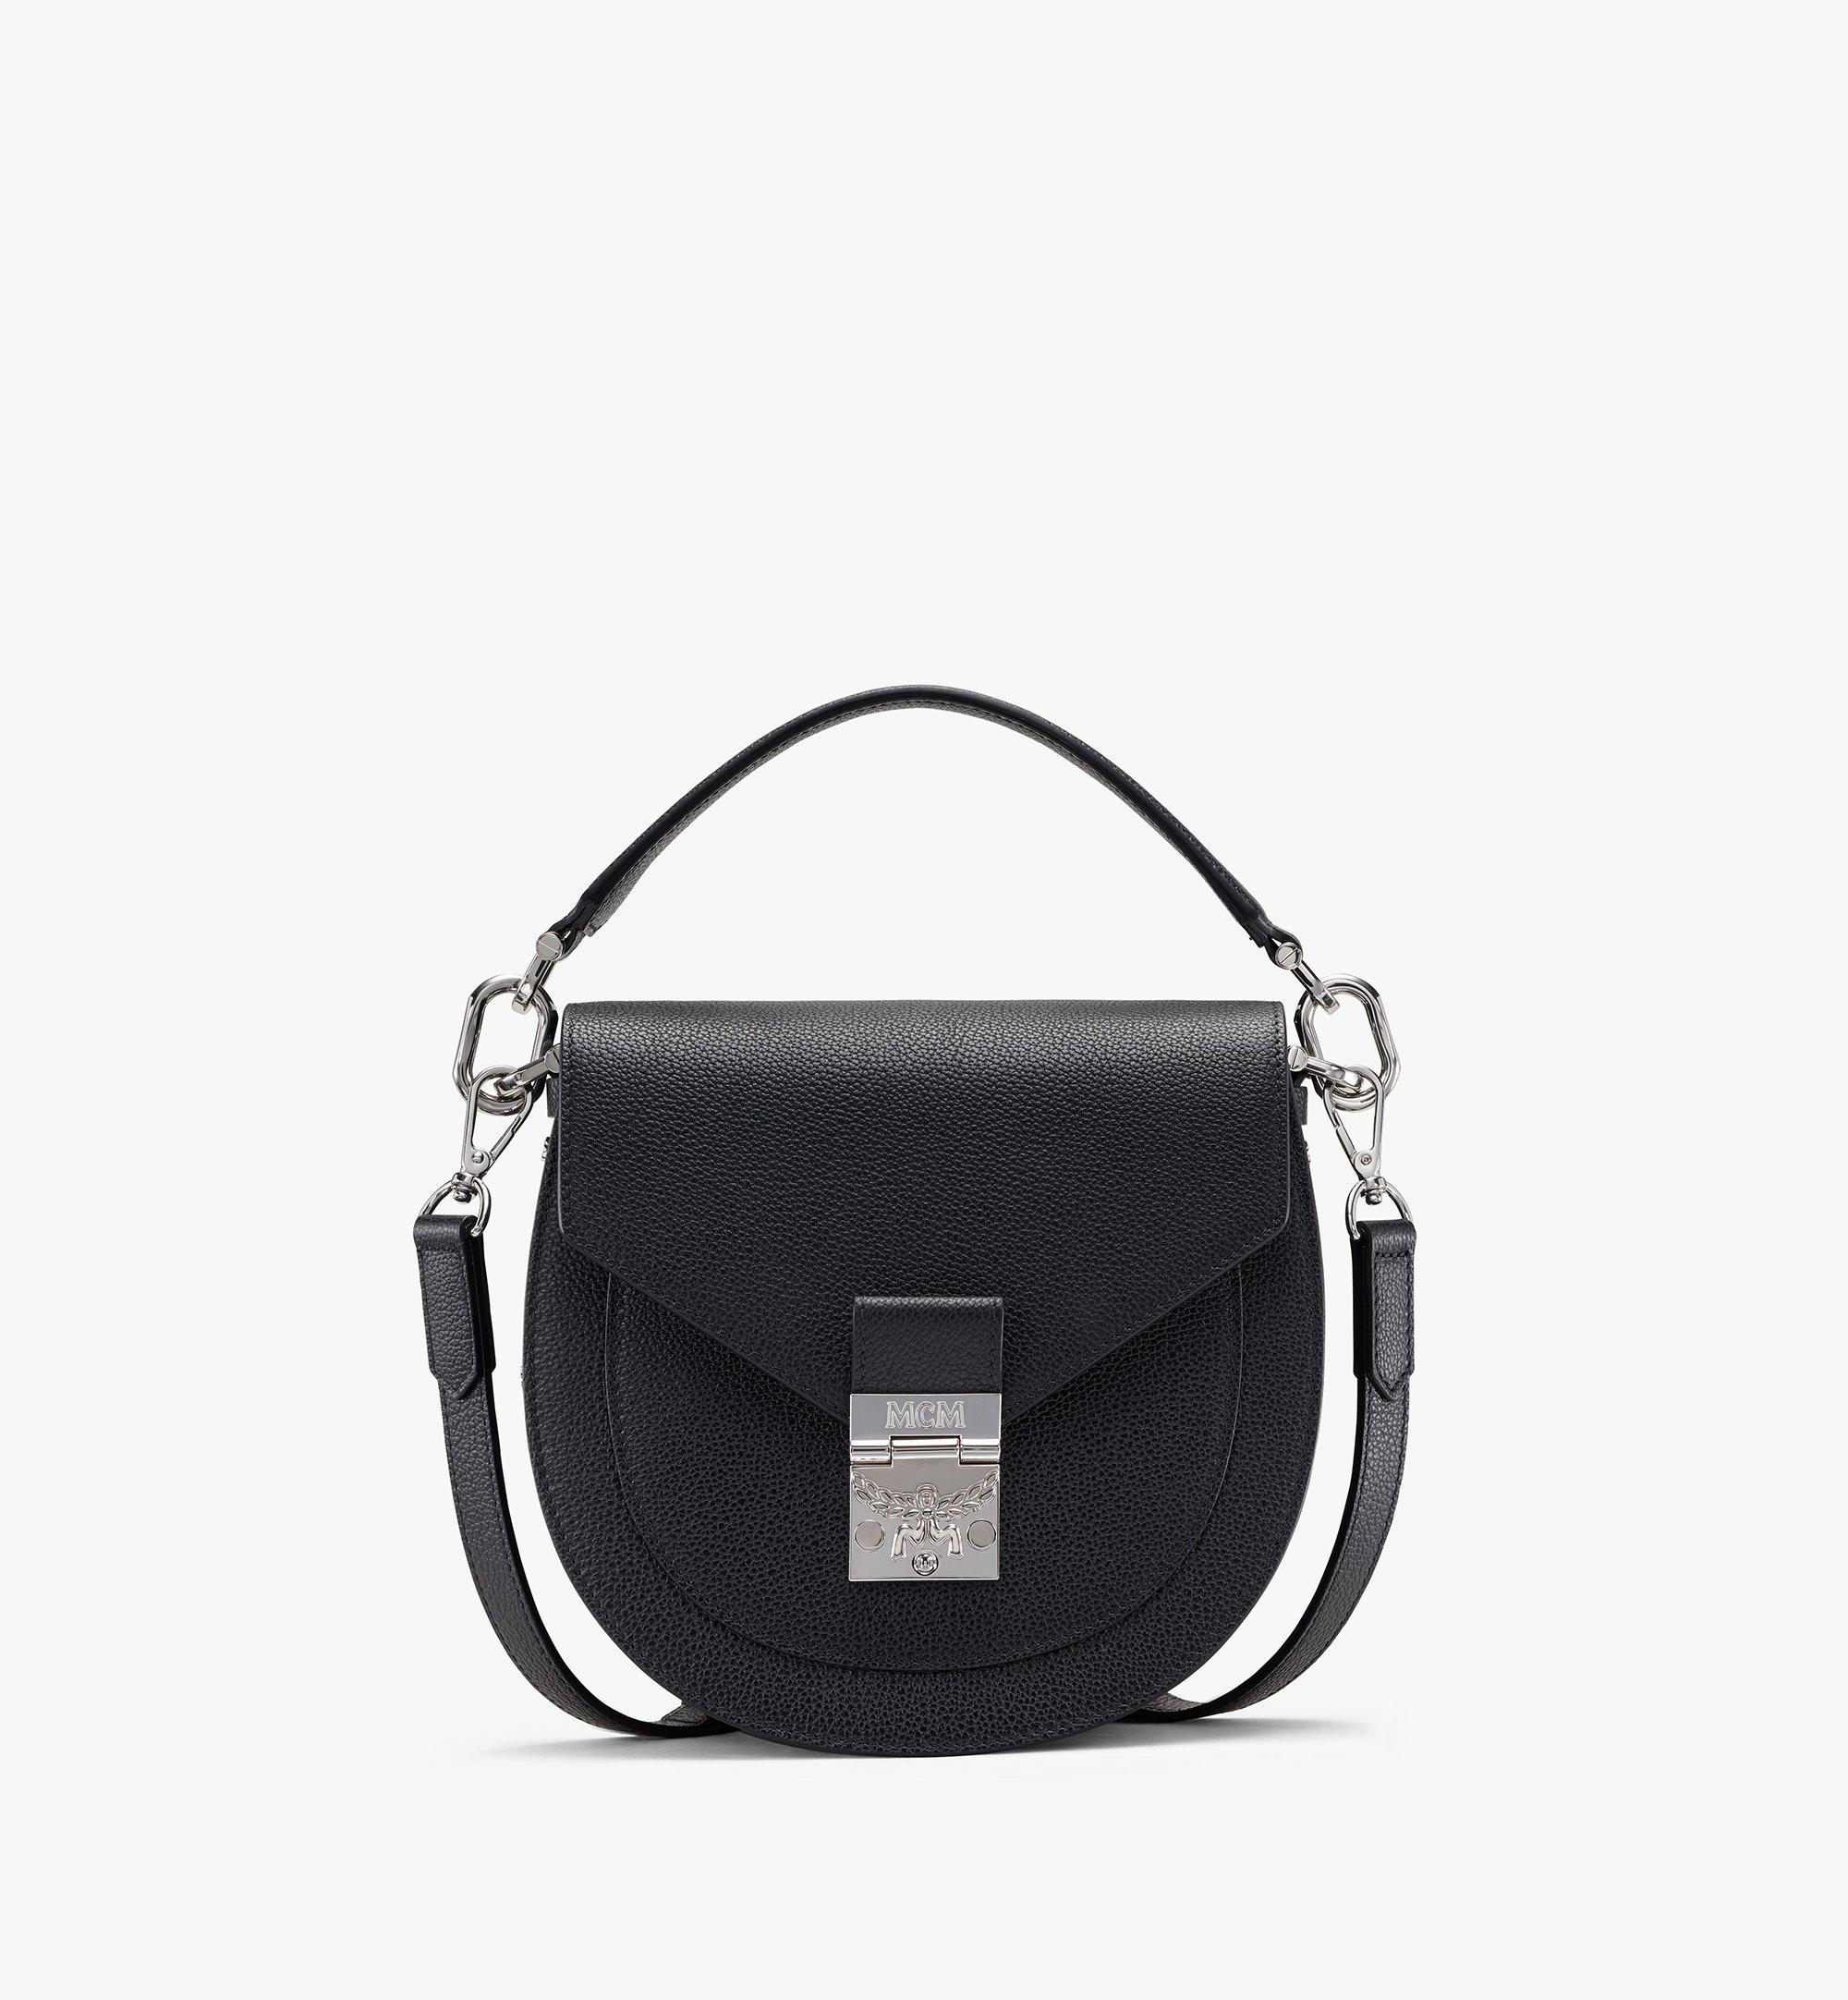 MCM Patricia Shoulder Bag in Park Avenue Leather Black MWSASPA03BK001 Alternate View 1